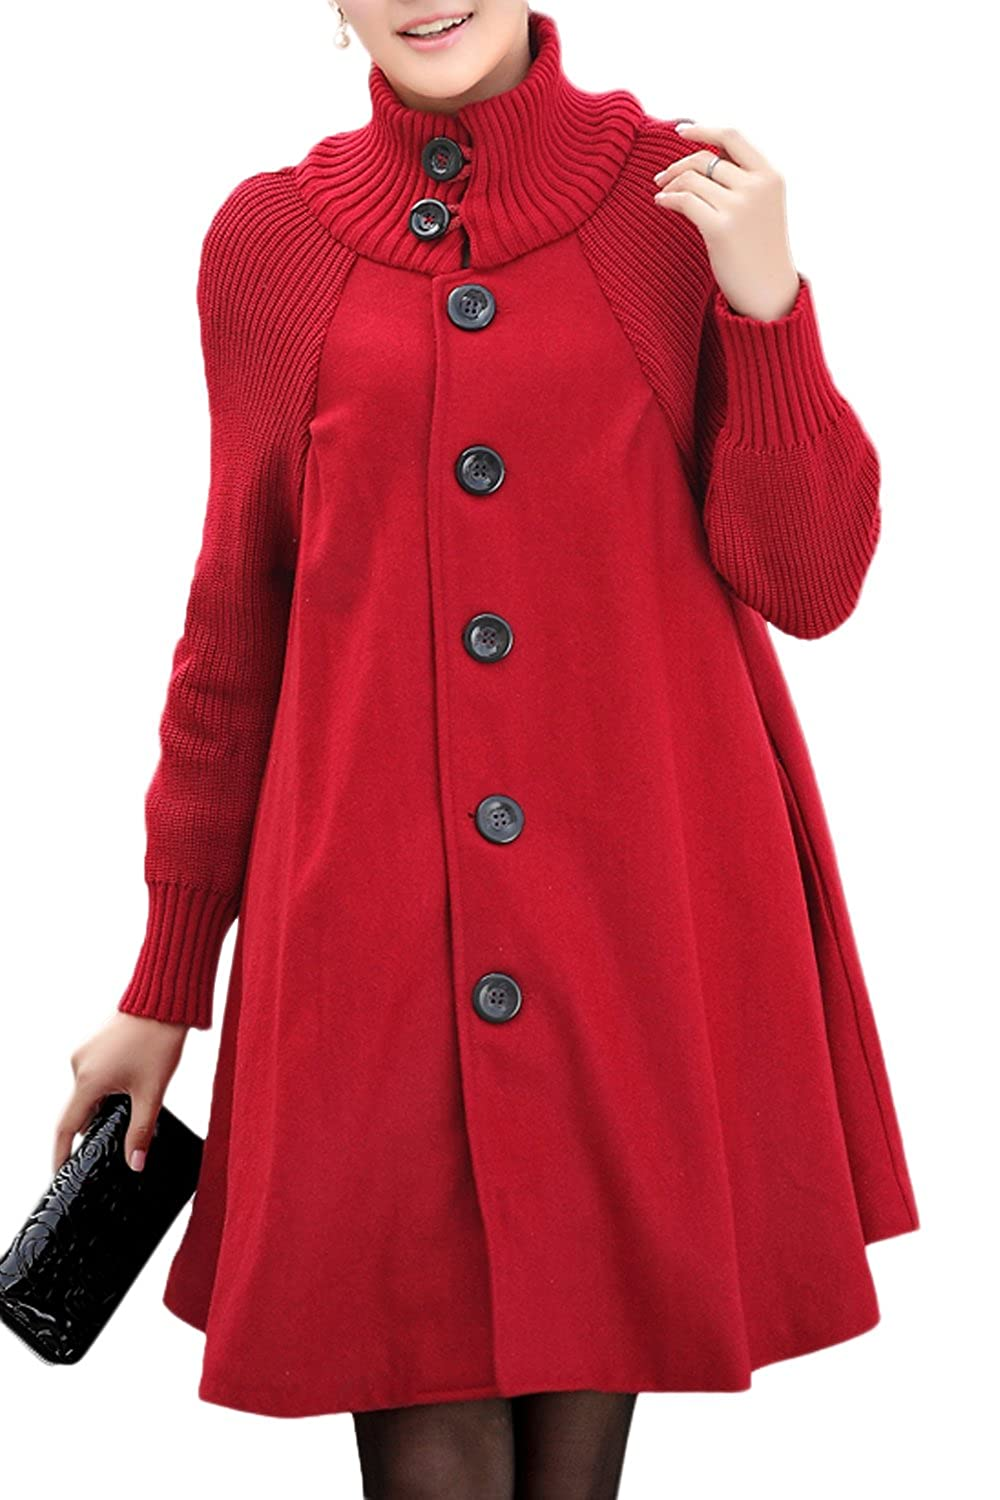 Women's Loose Half-high Collar Knit Single Breasted Jacket Coat CATNLY7